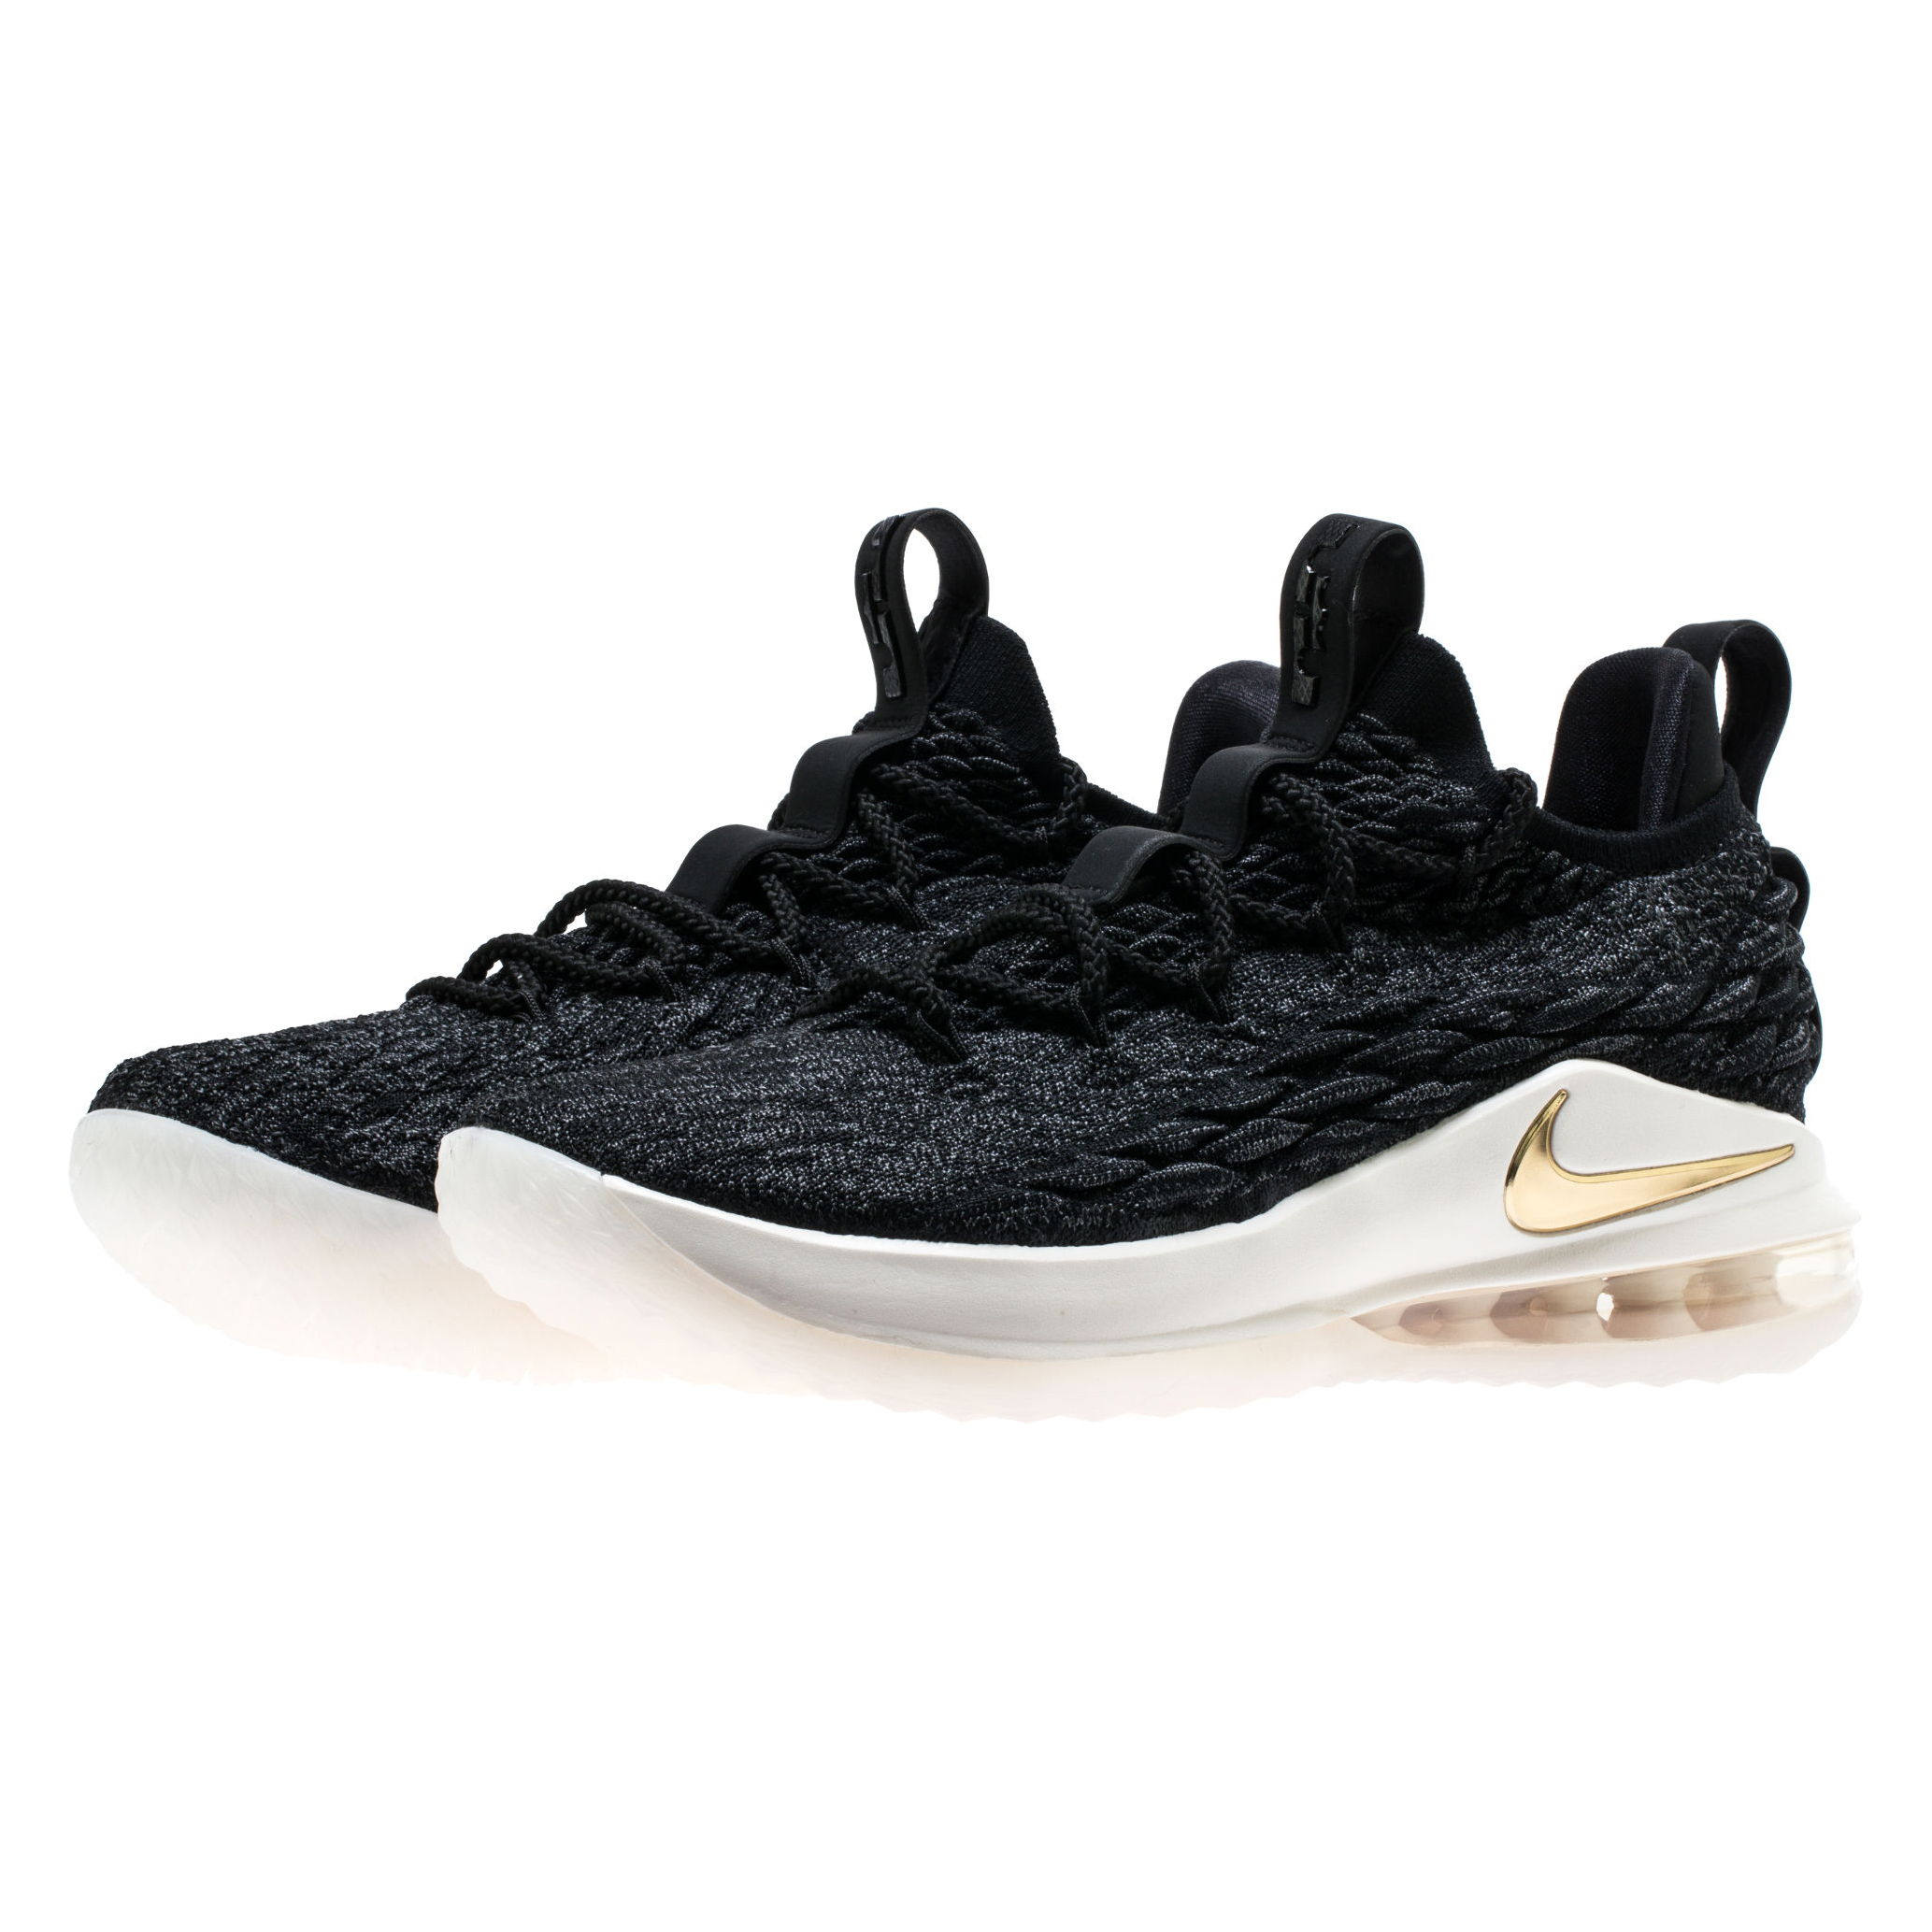 promo code 2f7ac c97f4 Two Nike LeBron 15 Low Colorways Will Drop for May - WearTesters